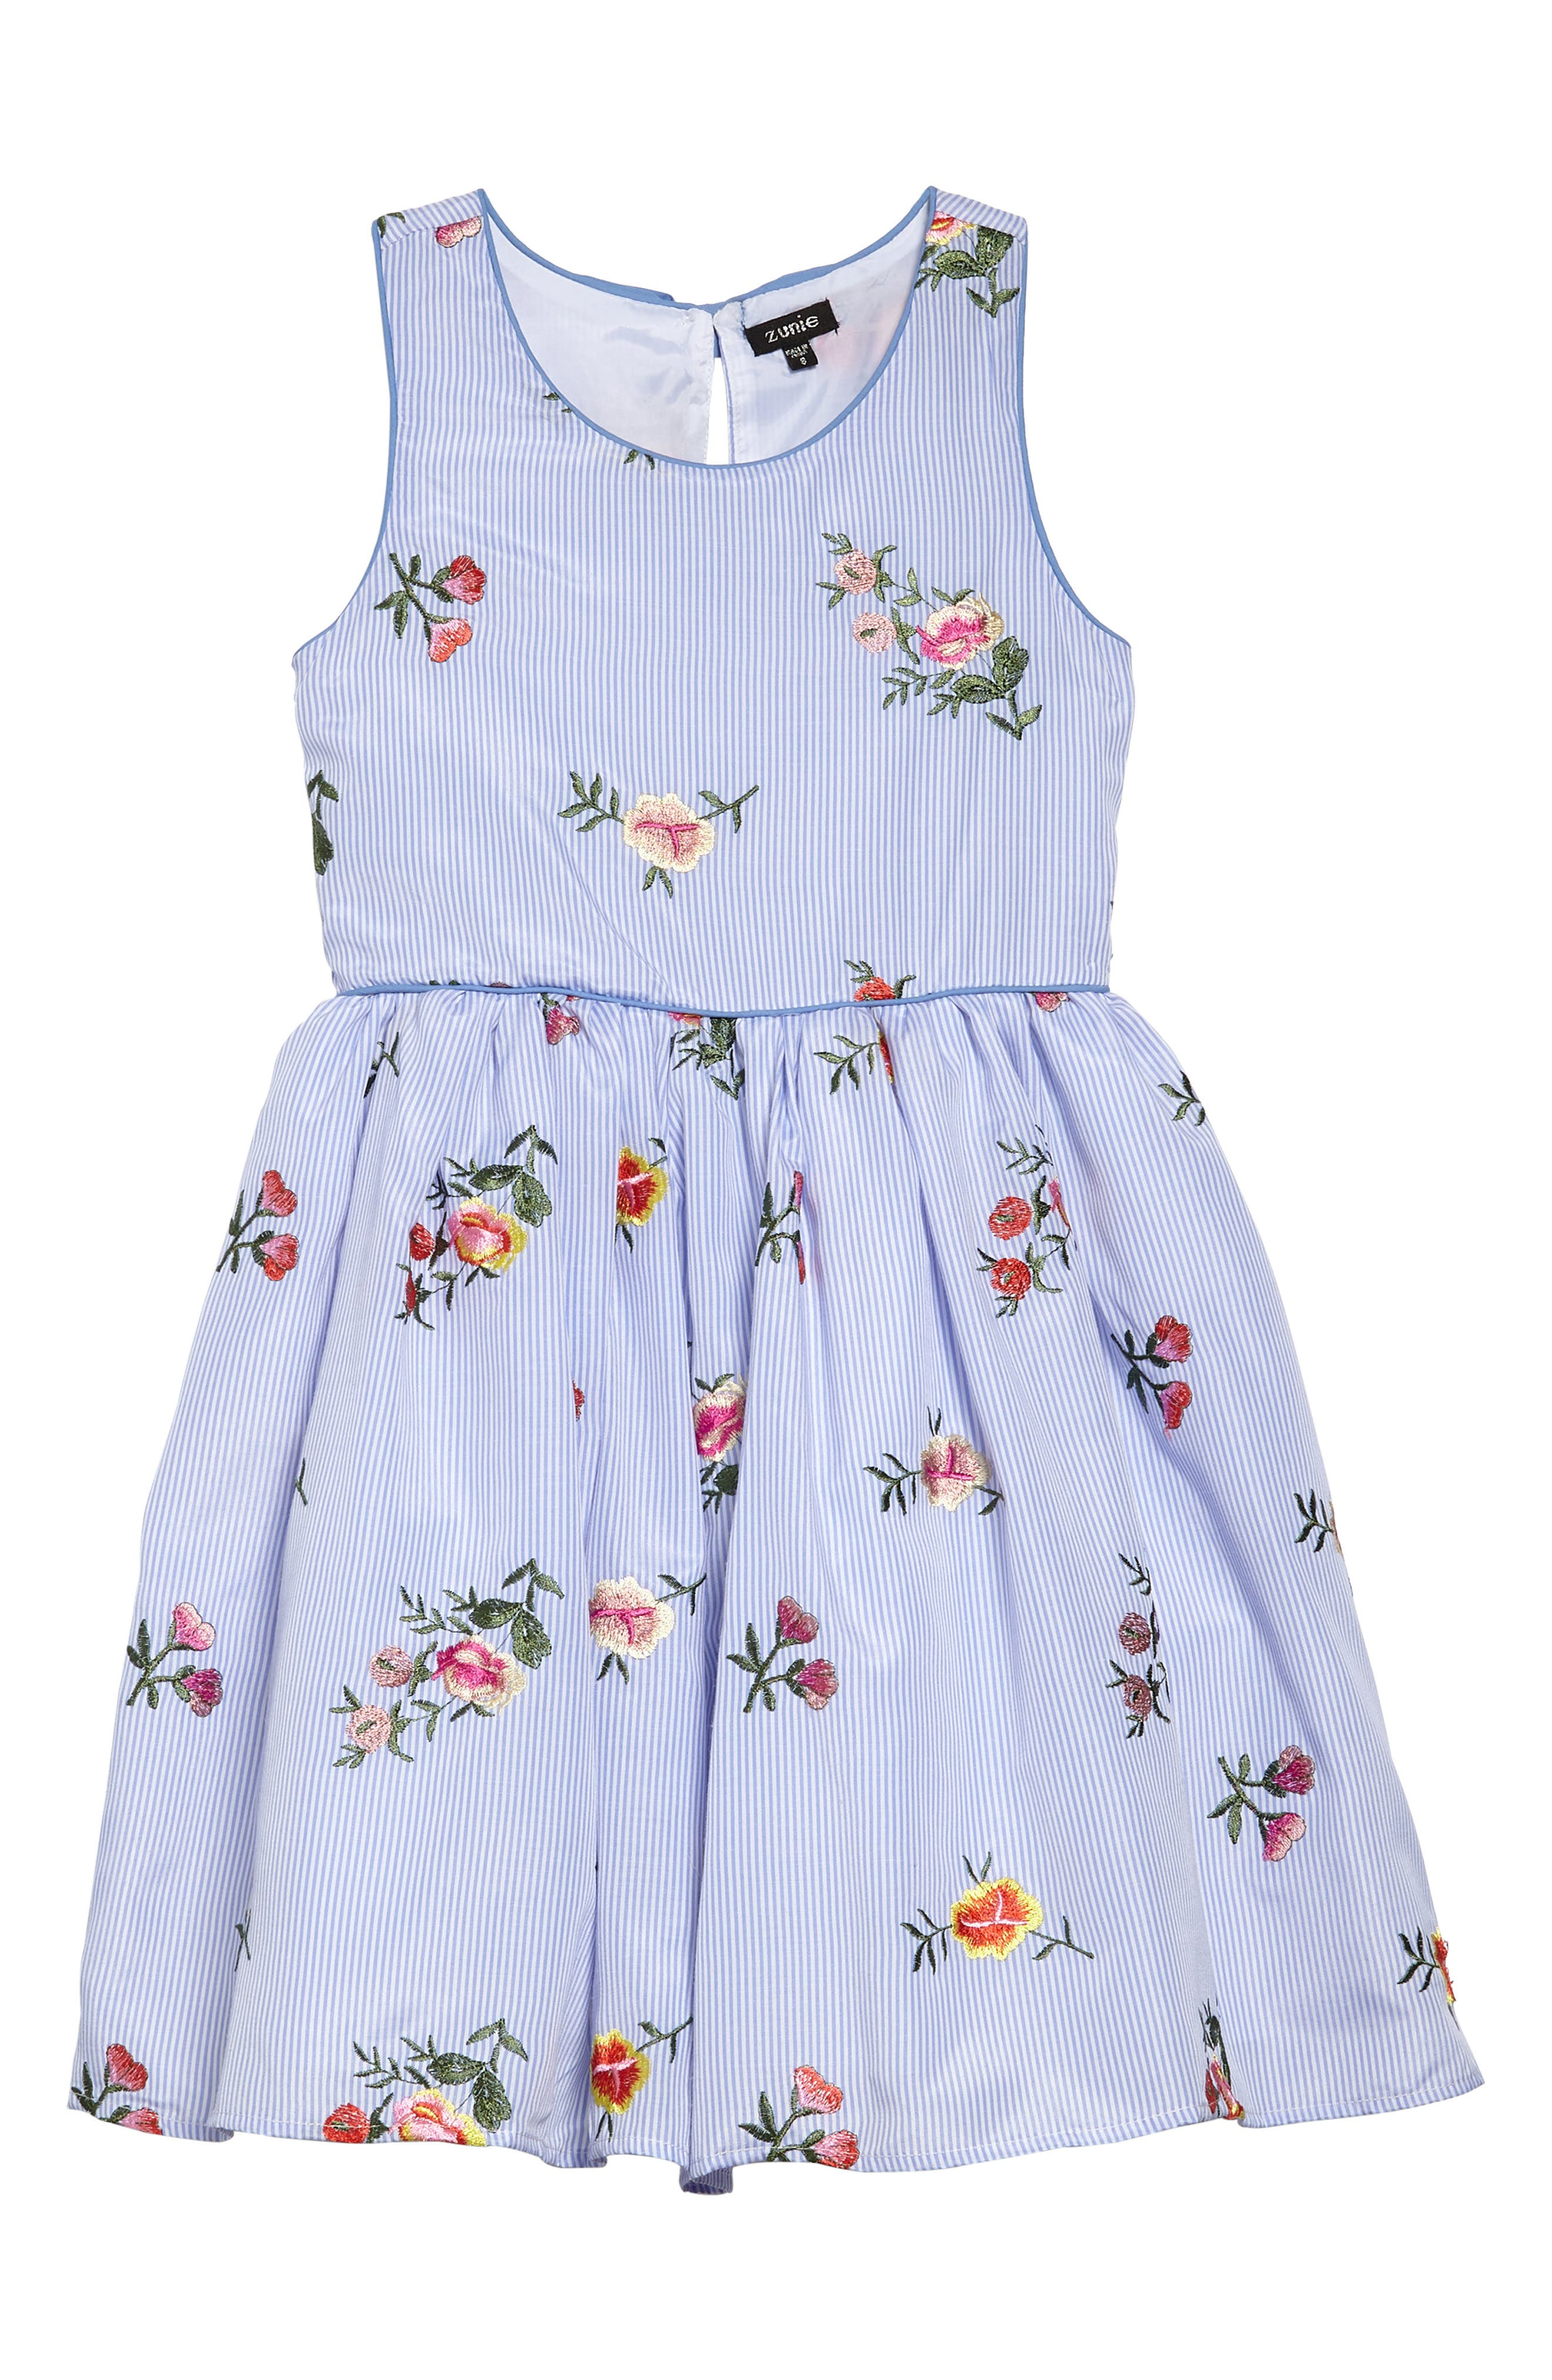 Stripe Embroidered Flower Sleeveless Dress,                         Main,                         color, Blue/ White